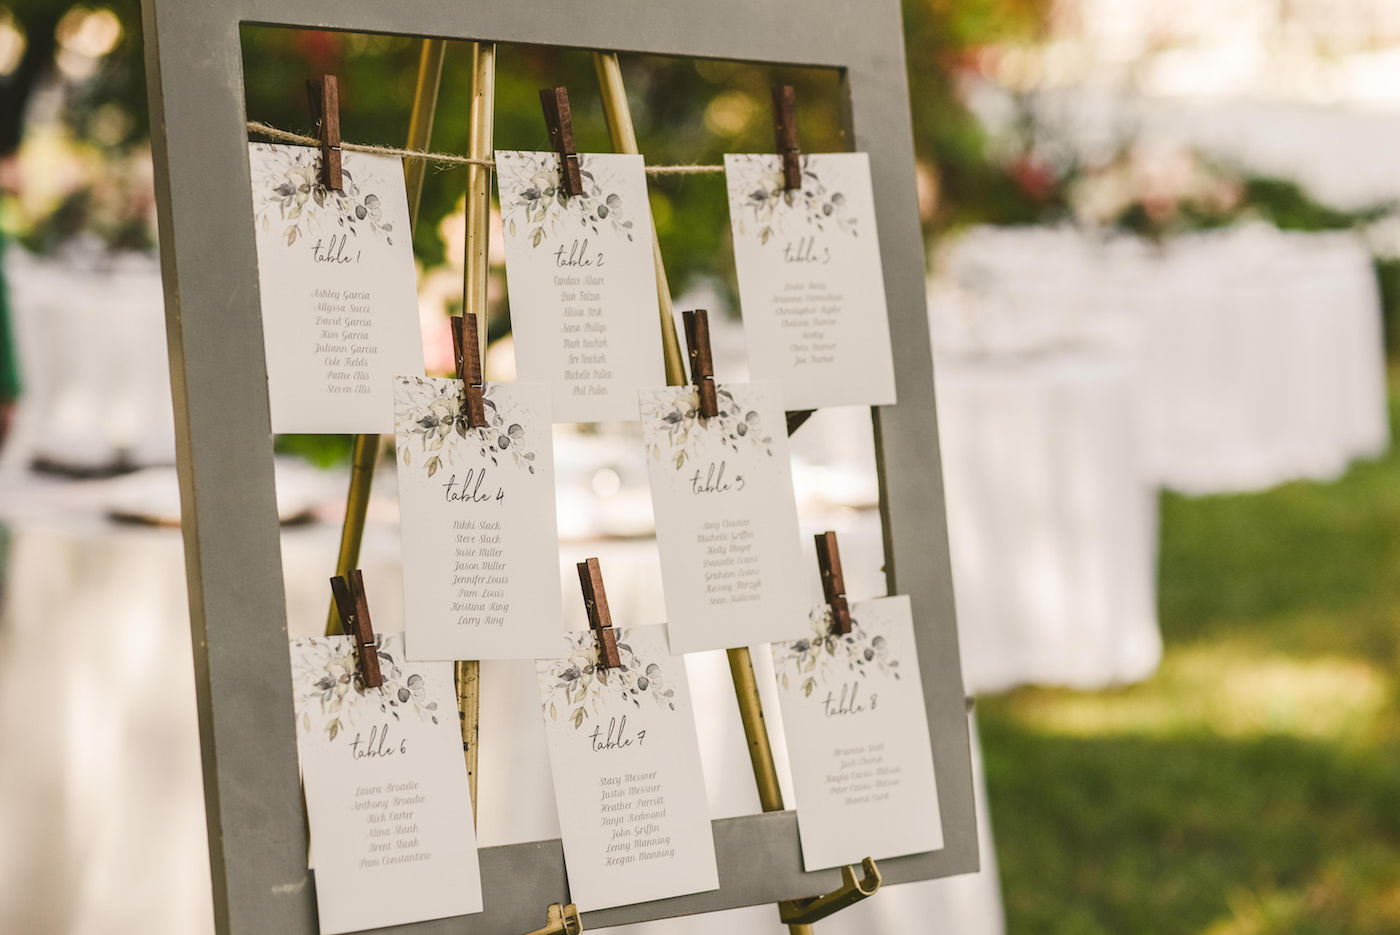 Tampa Outdoor Garden Wedding Reception Seating Chart Frame with Clothespins and Greenery Watercolor Motif